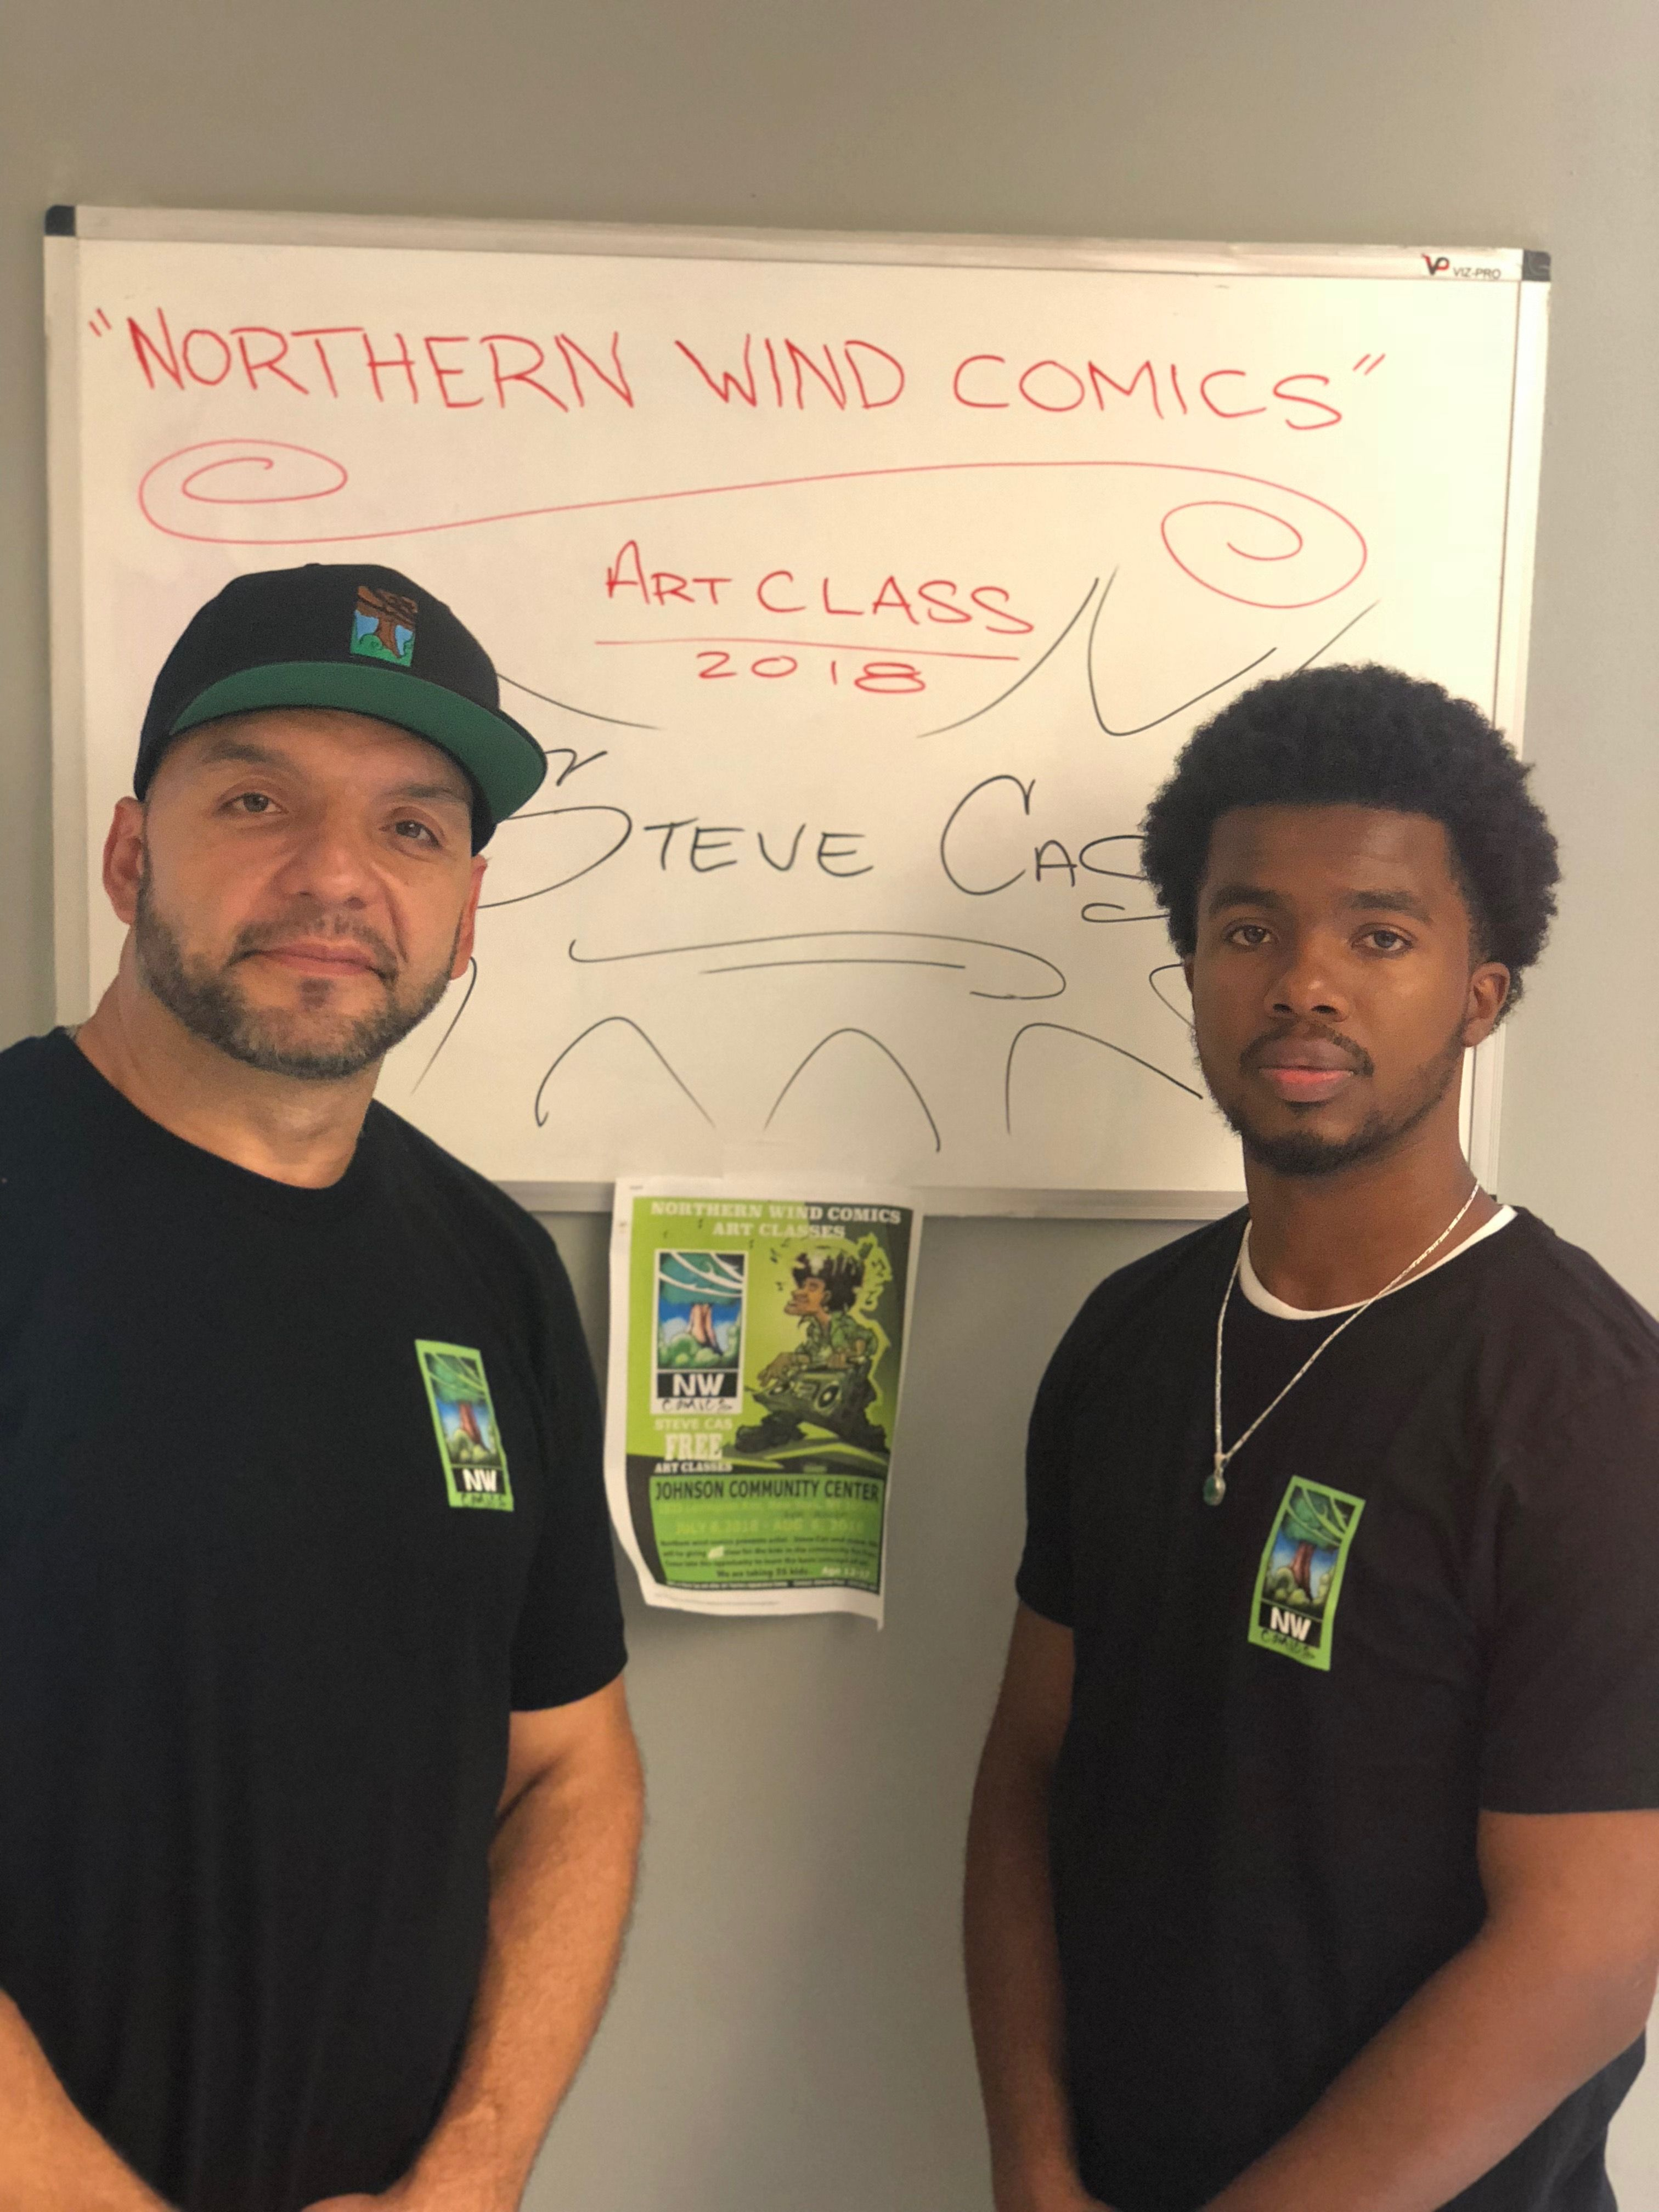 Northern Wind Comics free art class at 1833 Johnson community center